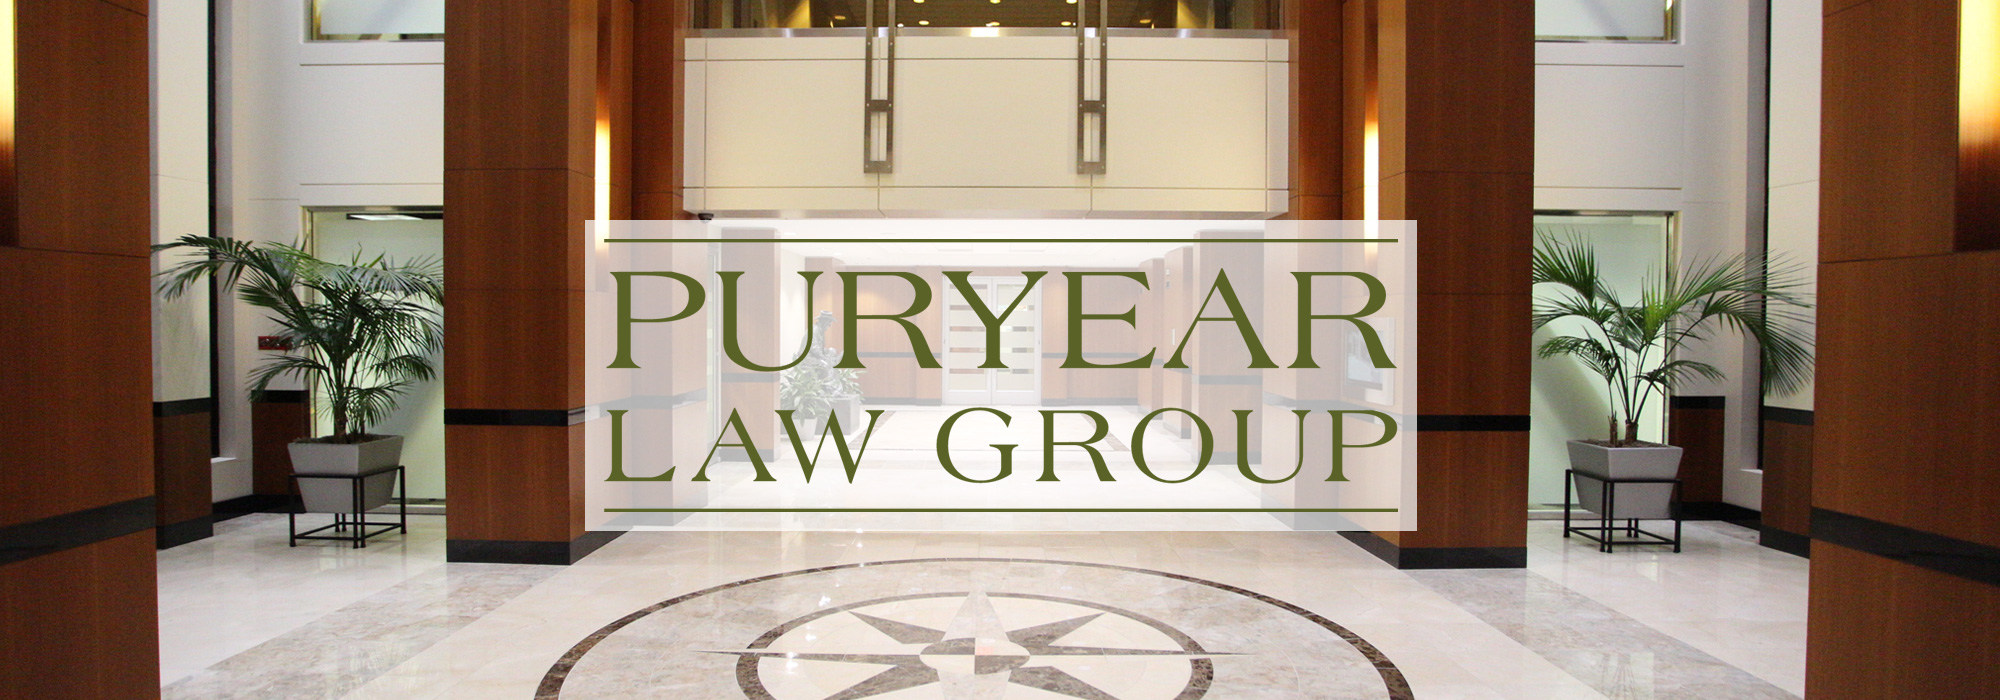 Puryear Law Group